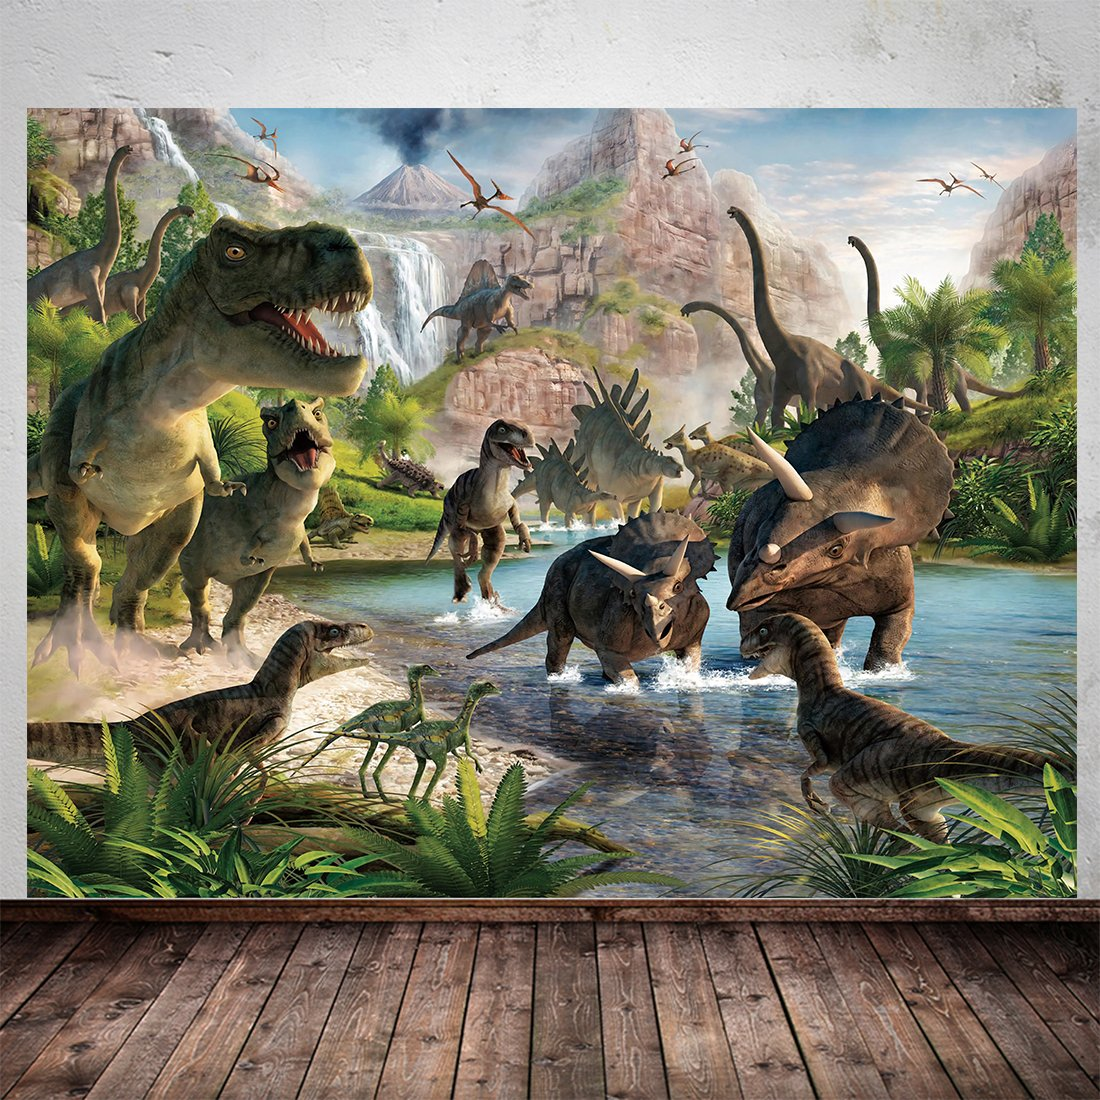 7X5Ft Dinosaur Theme Photography Backdrops Photo Studio Backdrop Vinyl Backdrop Photo Booth Background for Photography Video Kid Children Birthday Party